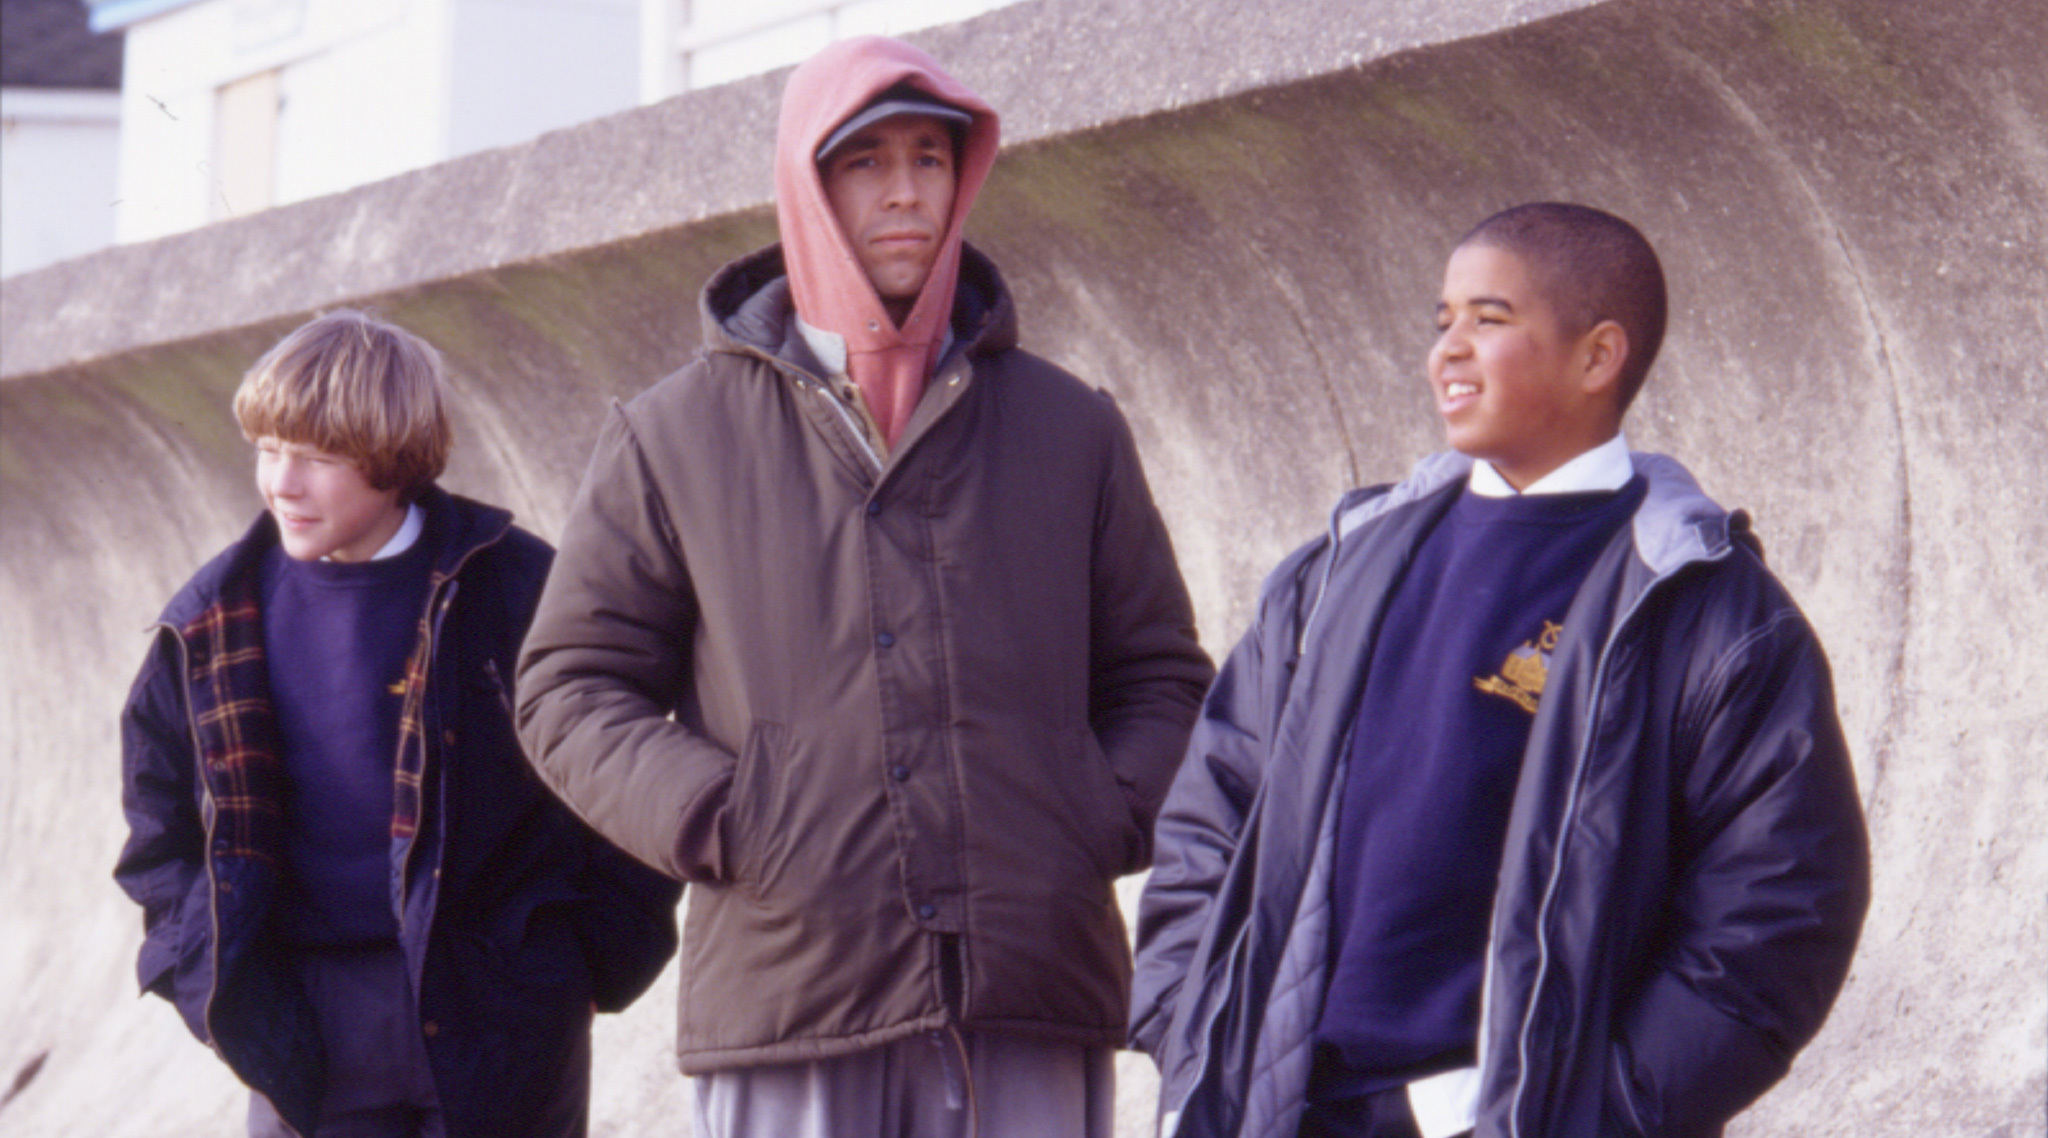 20 best friendship movies: Room for Romeo Brass